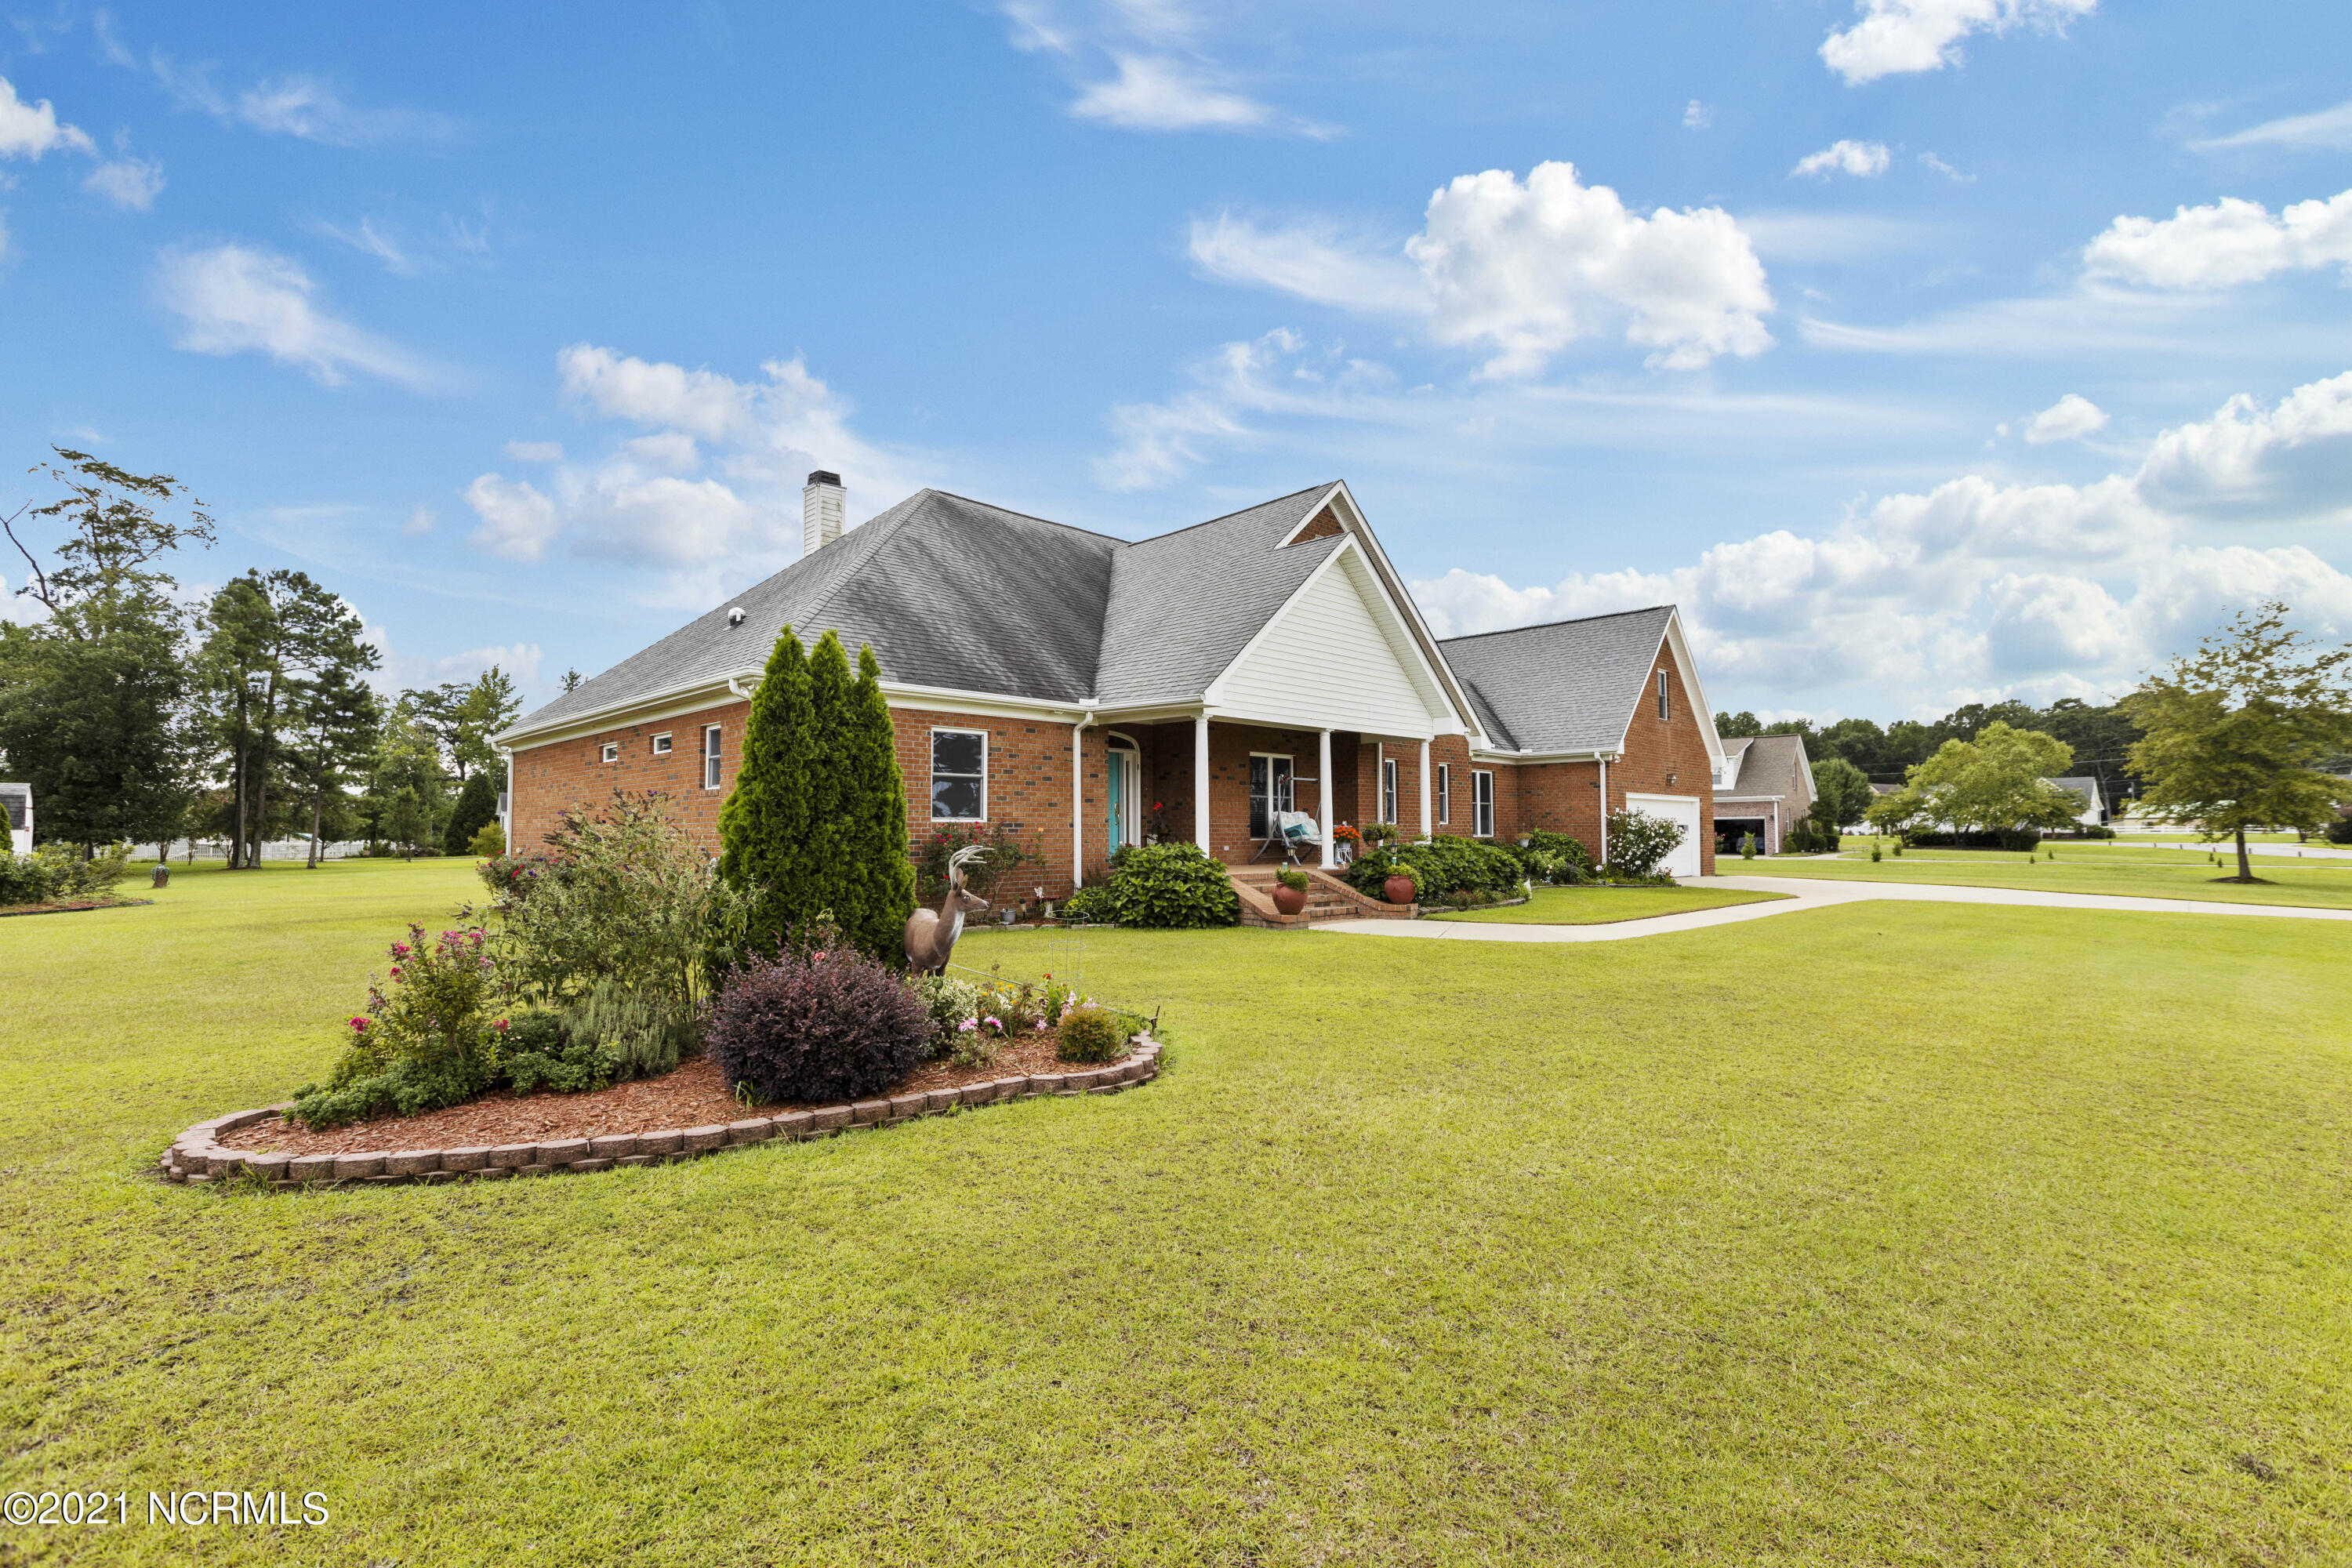 1326 Fox Hollow Drive, Ayden, North Carolina 28513, 3 Bedrooms Bedrooms, 9 Rooms Rooms,3 BathroomsBathrooms,Single family residence,For sale,Fox Hollow,100283165